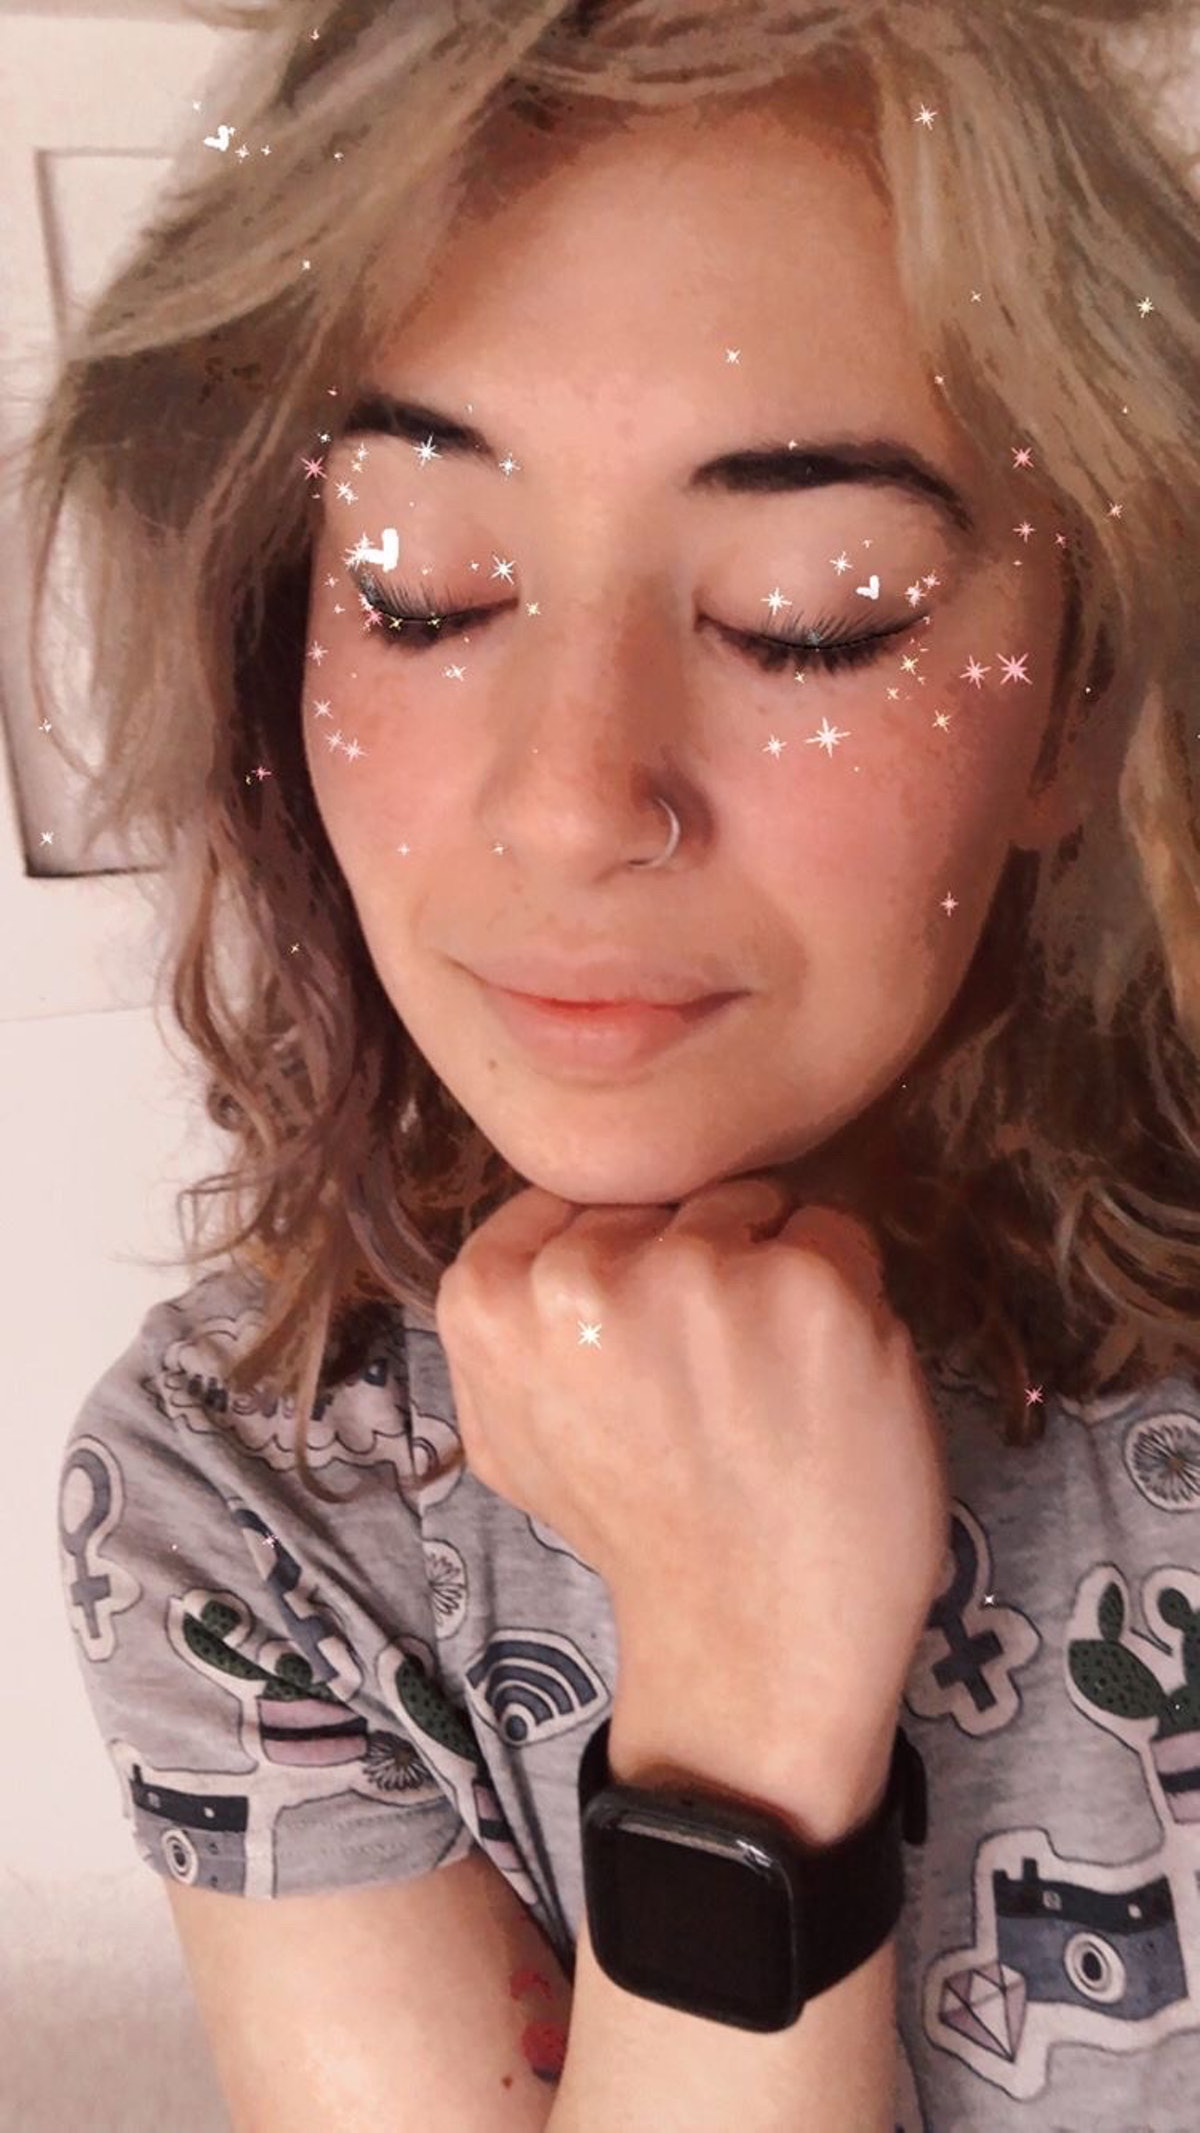 A woman closes her eyes with glitter filtered all around her face.